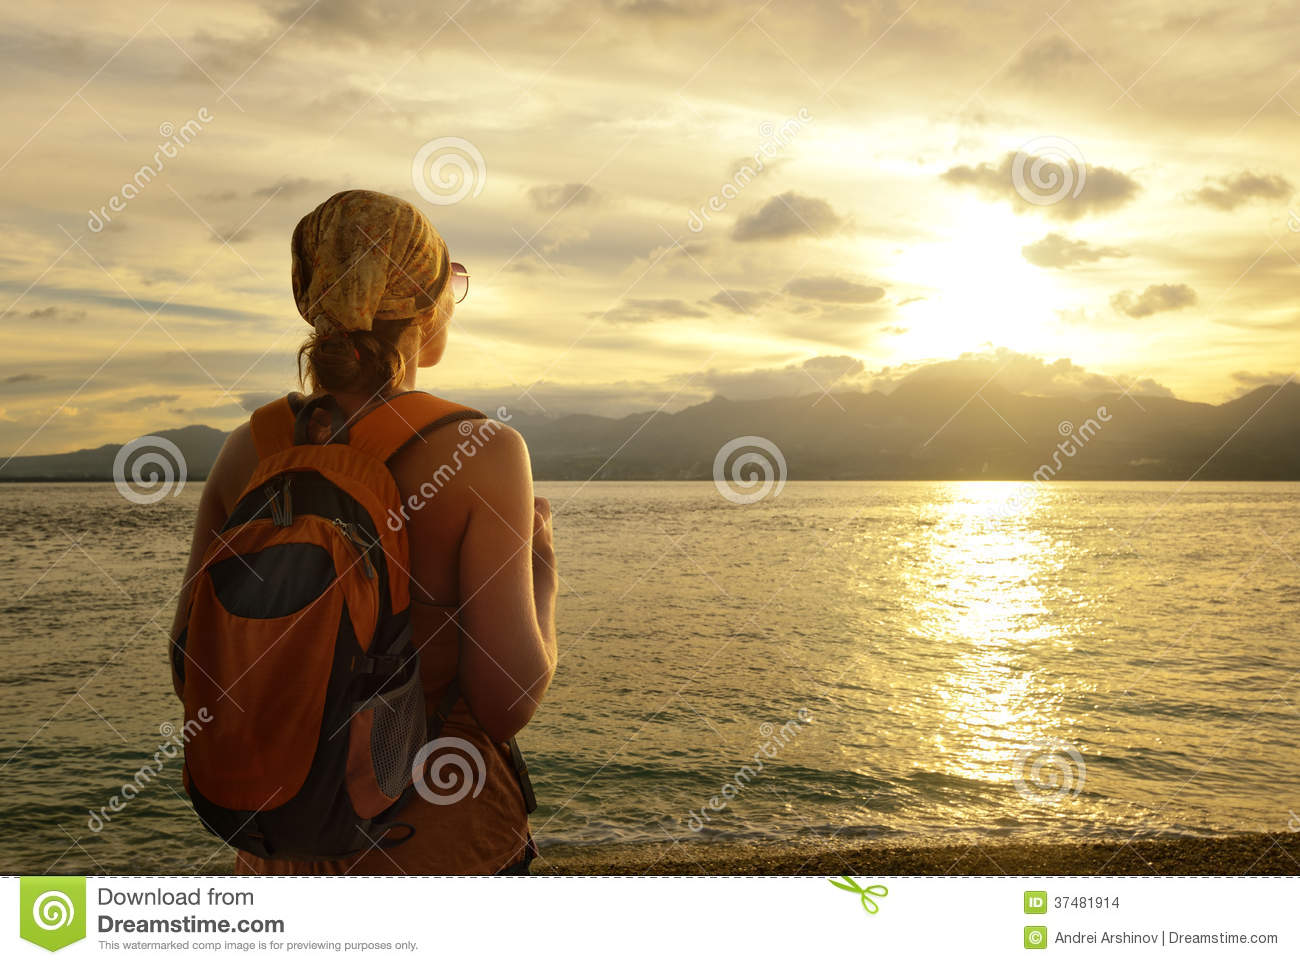 Girl With A Backpack Dreams Of Travel Stock Images - Image: 37481914